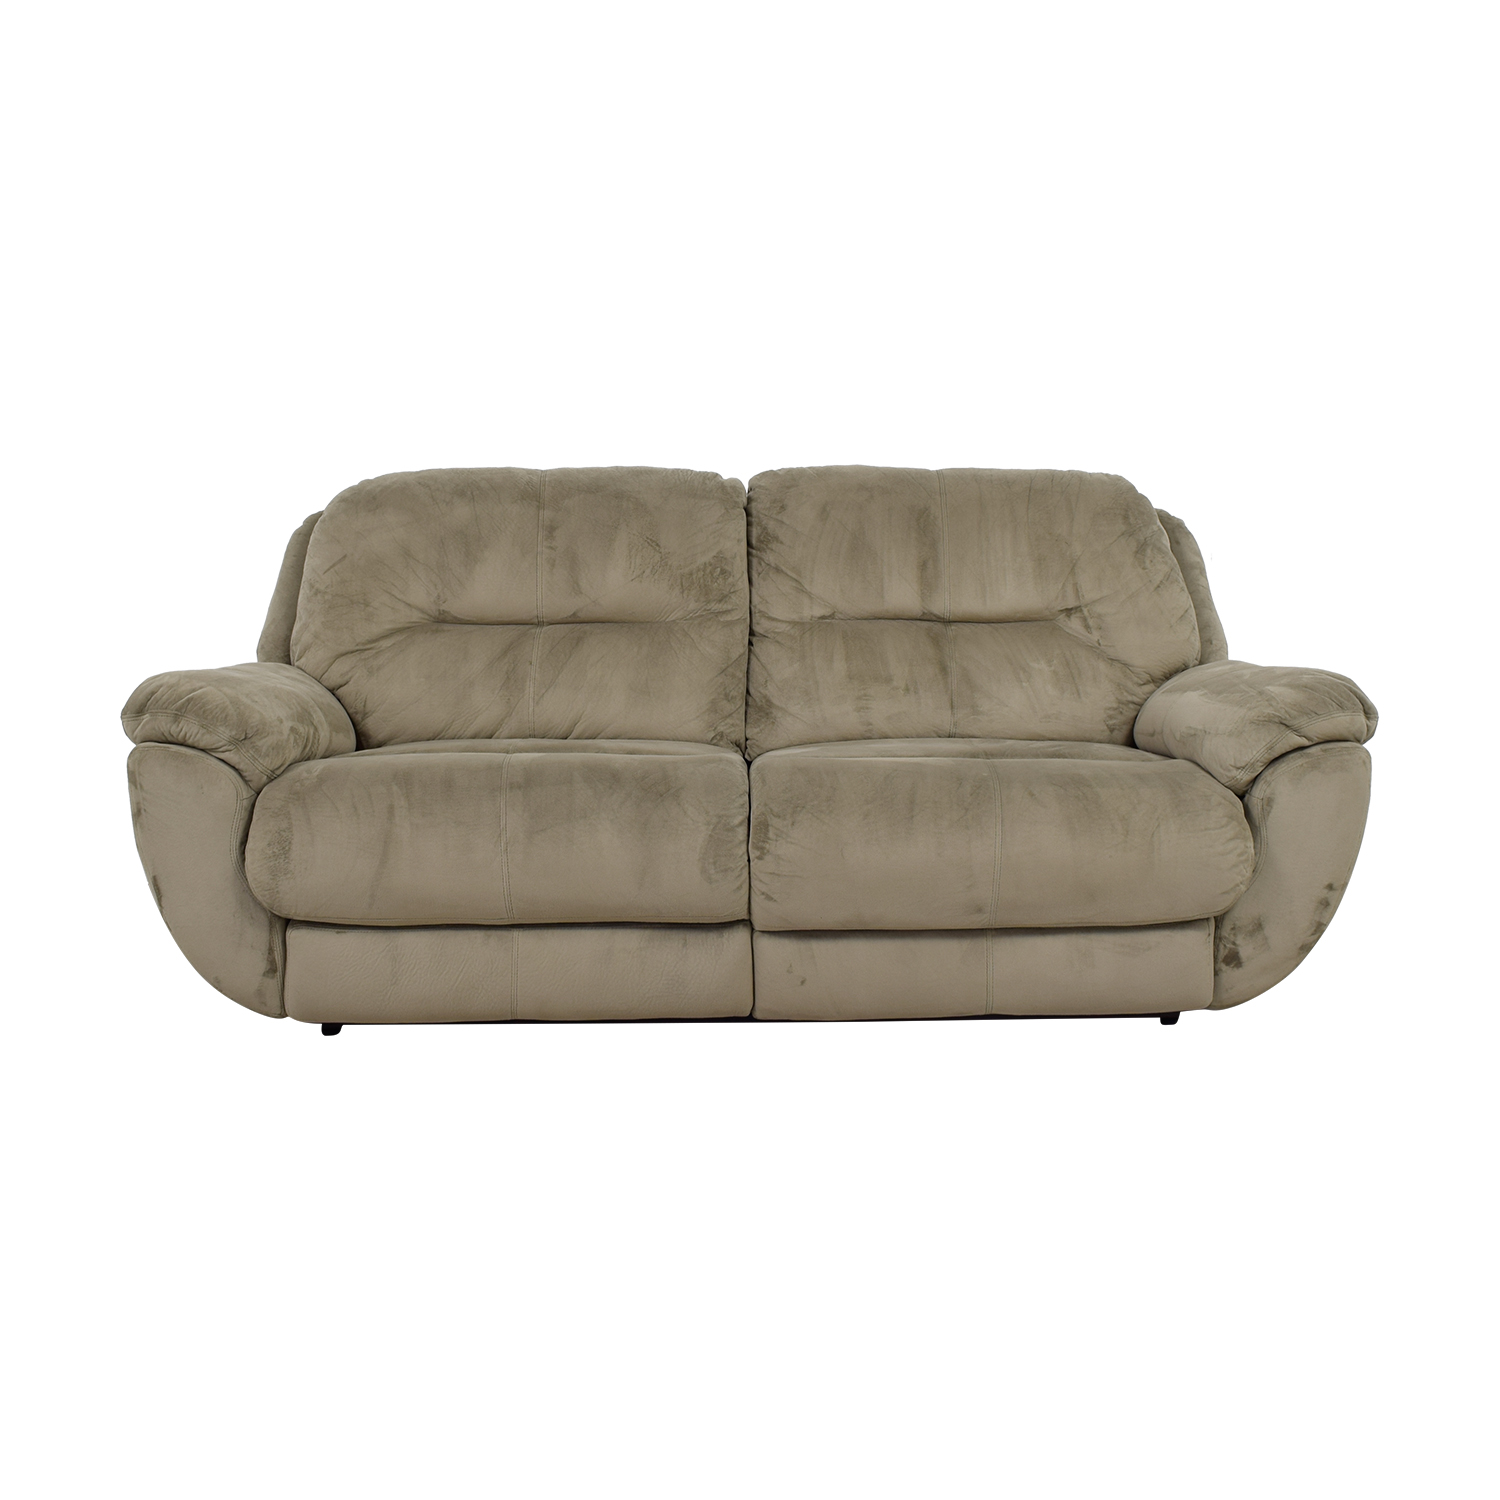 sofas under 2000 stressless furniture used for sale